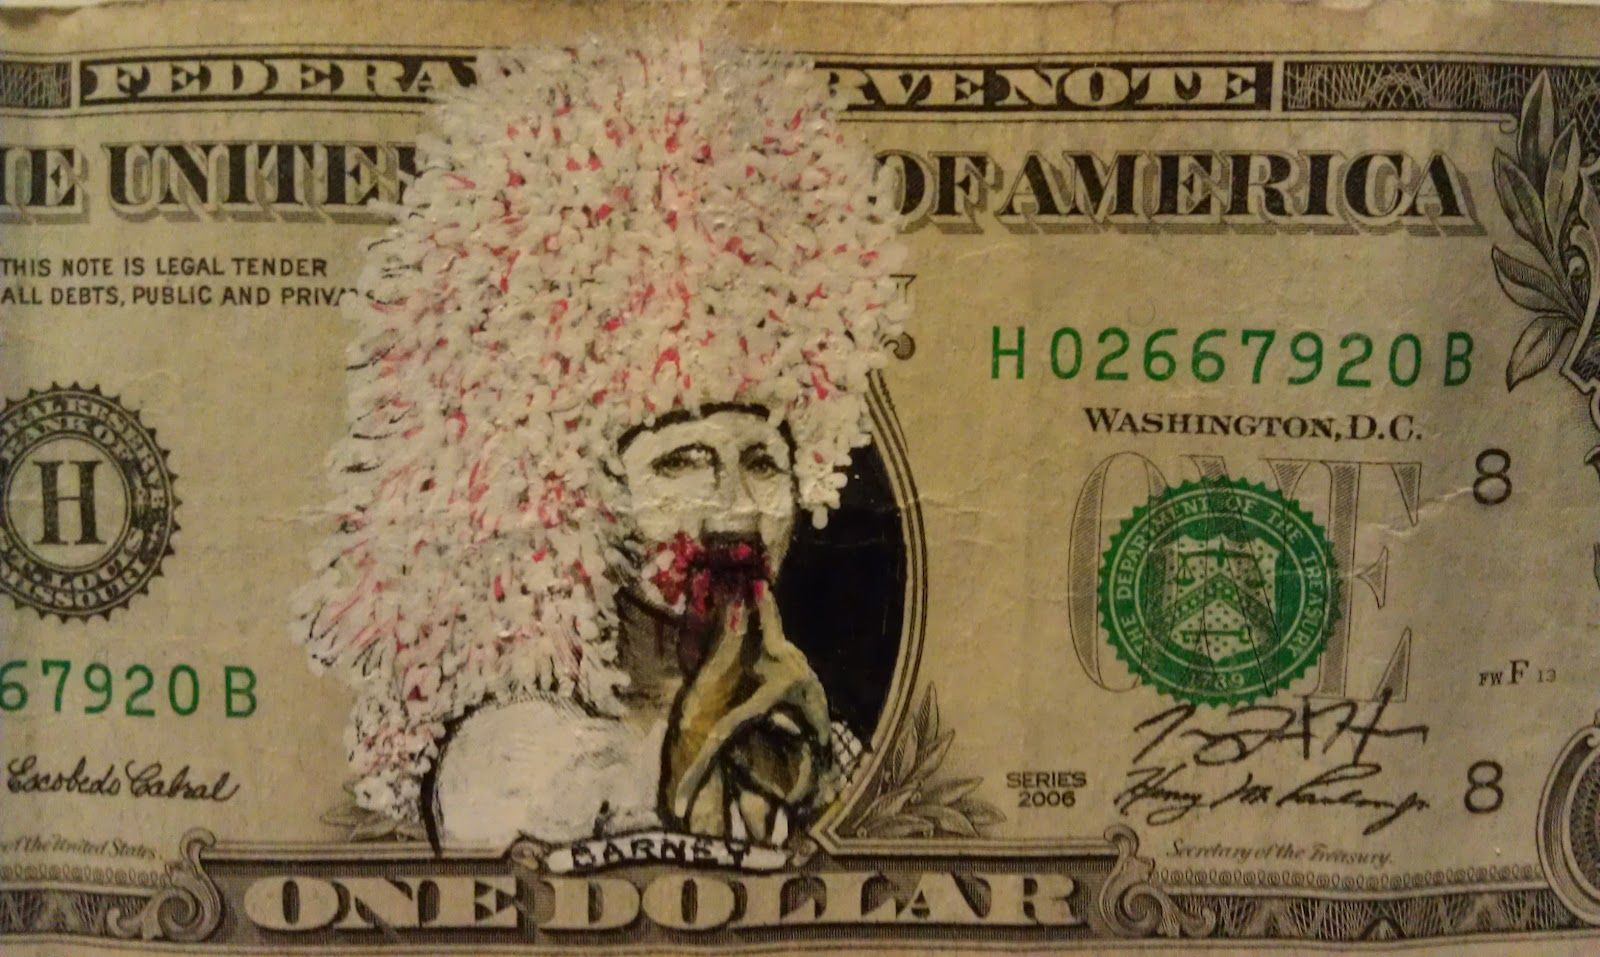 1600x957 The Art Of Jeremy Hara Drawing On Dollars Currency Art Amp Some